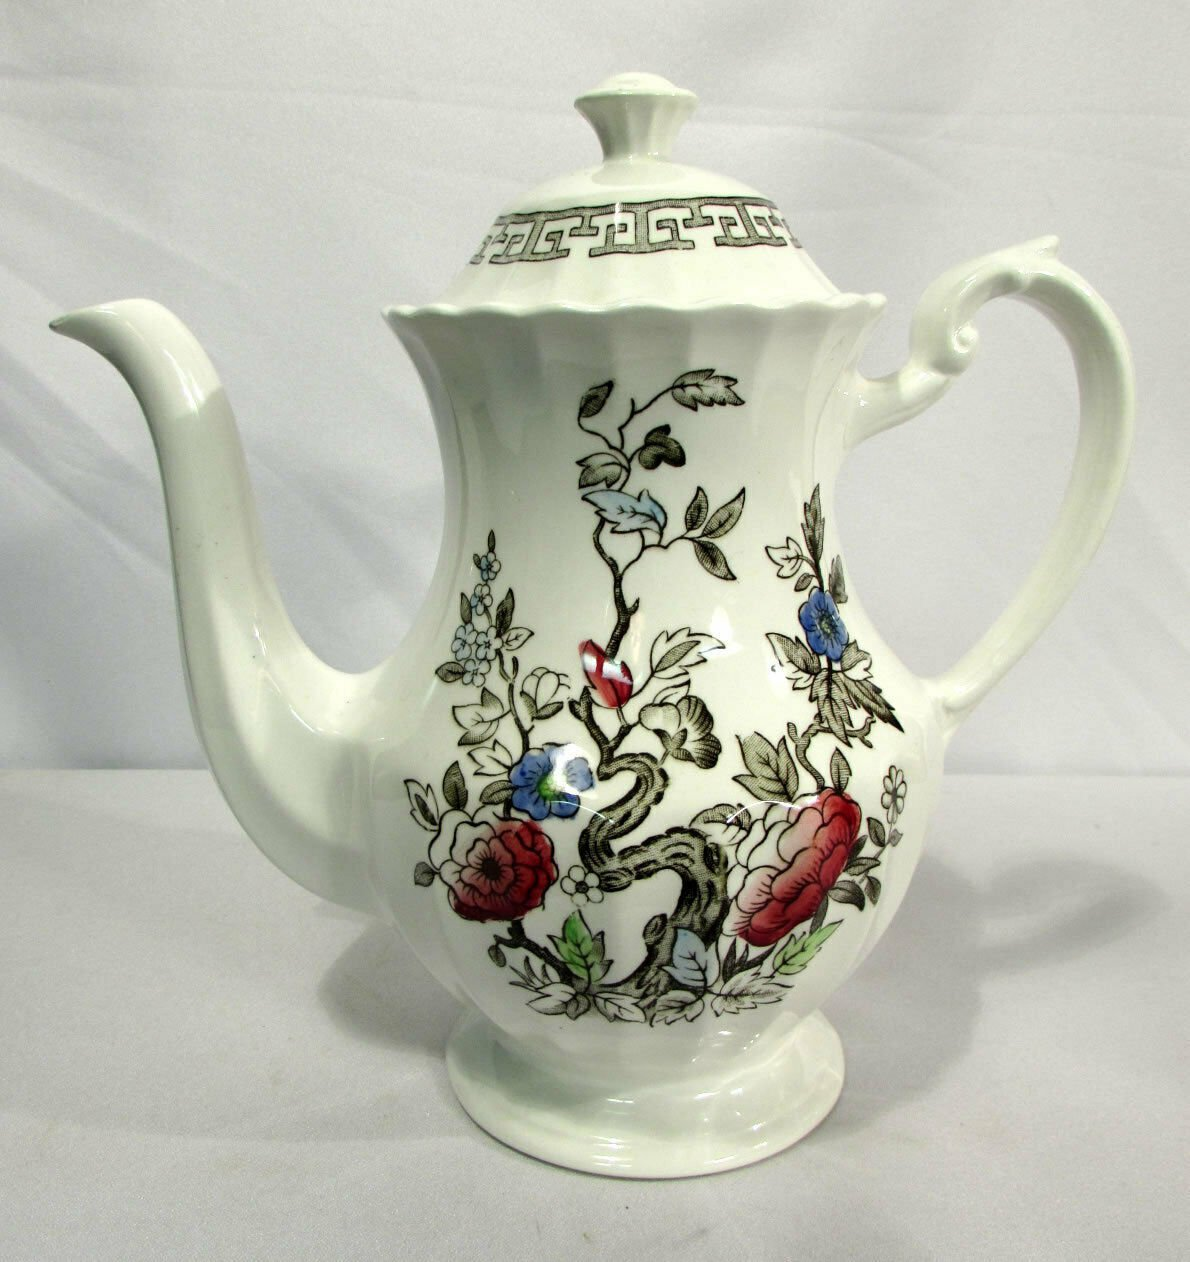 J&G Meakin Coffee Pot 5 Cup England Staffordshire White Kashmir Indian Tree